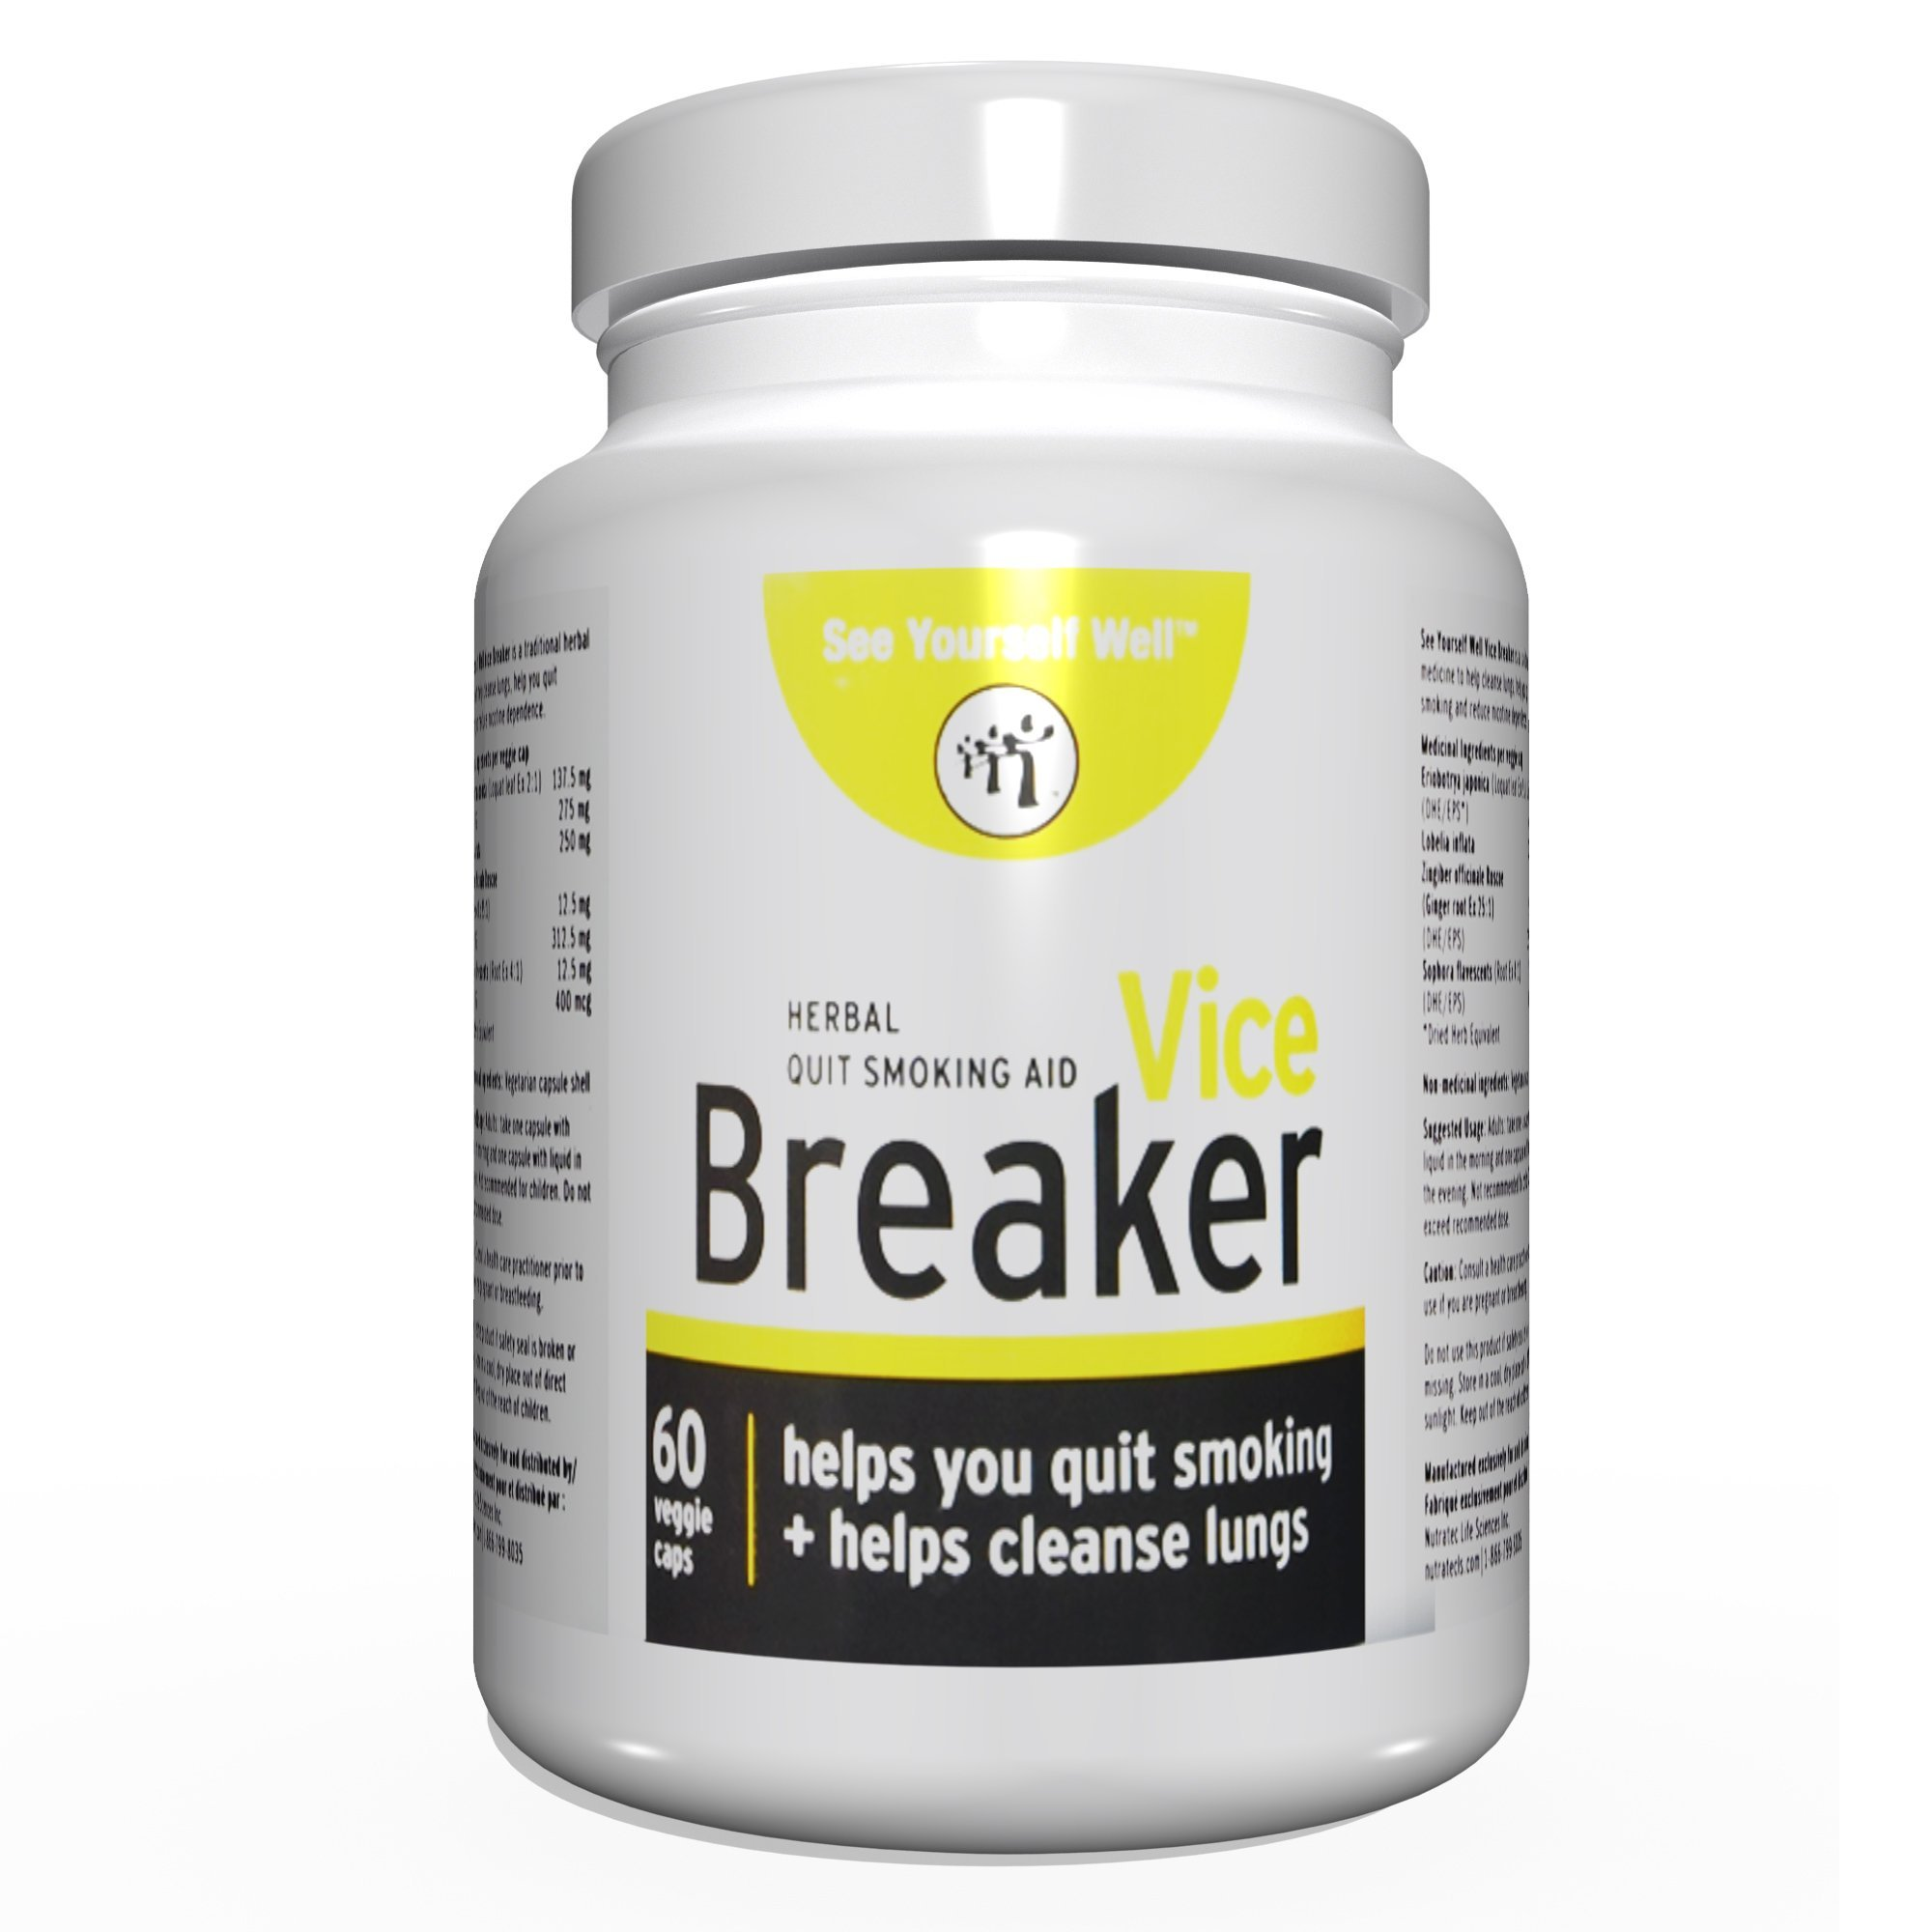 Vice Breaker: Quit Smoking for The Last Time. Works Fast - Stop Smoking Within 30 Days. Or Take with Nicorette, NicoDerm and Other Nicotine Gums, Patches or Lozenges.100% Natural & Herbal by See Yourself Well